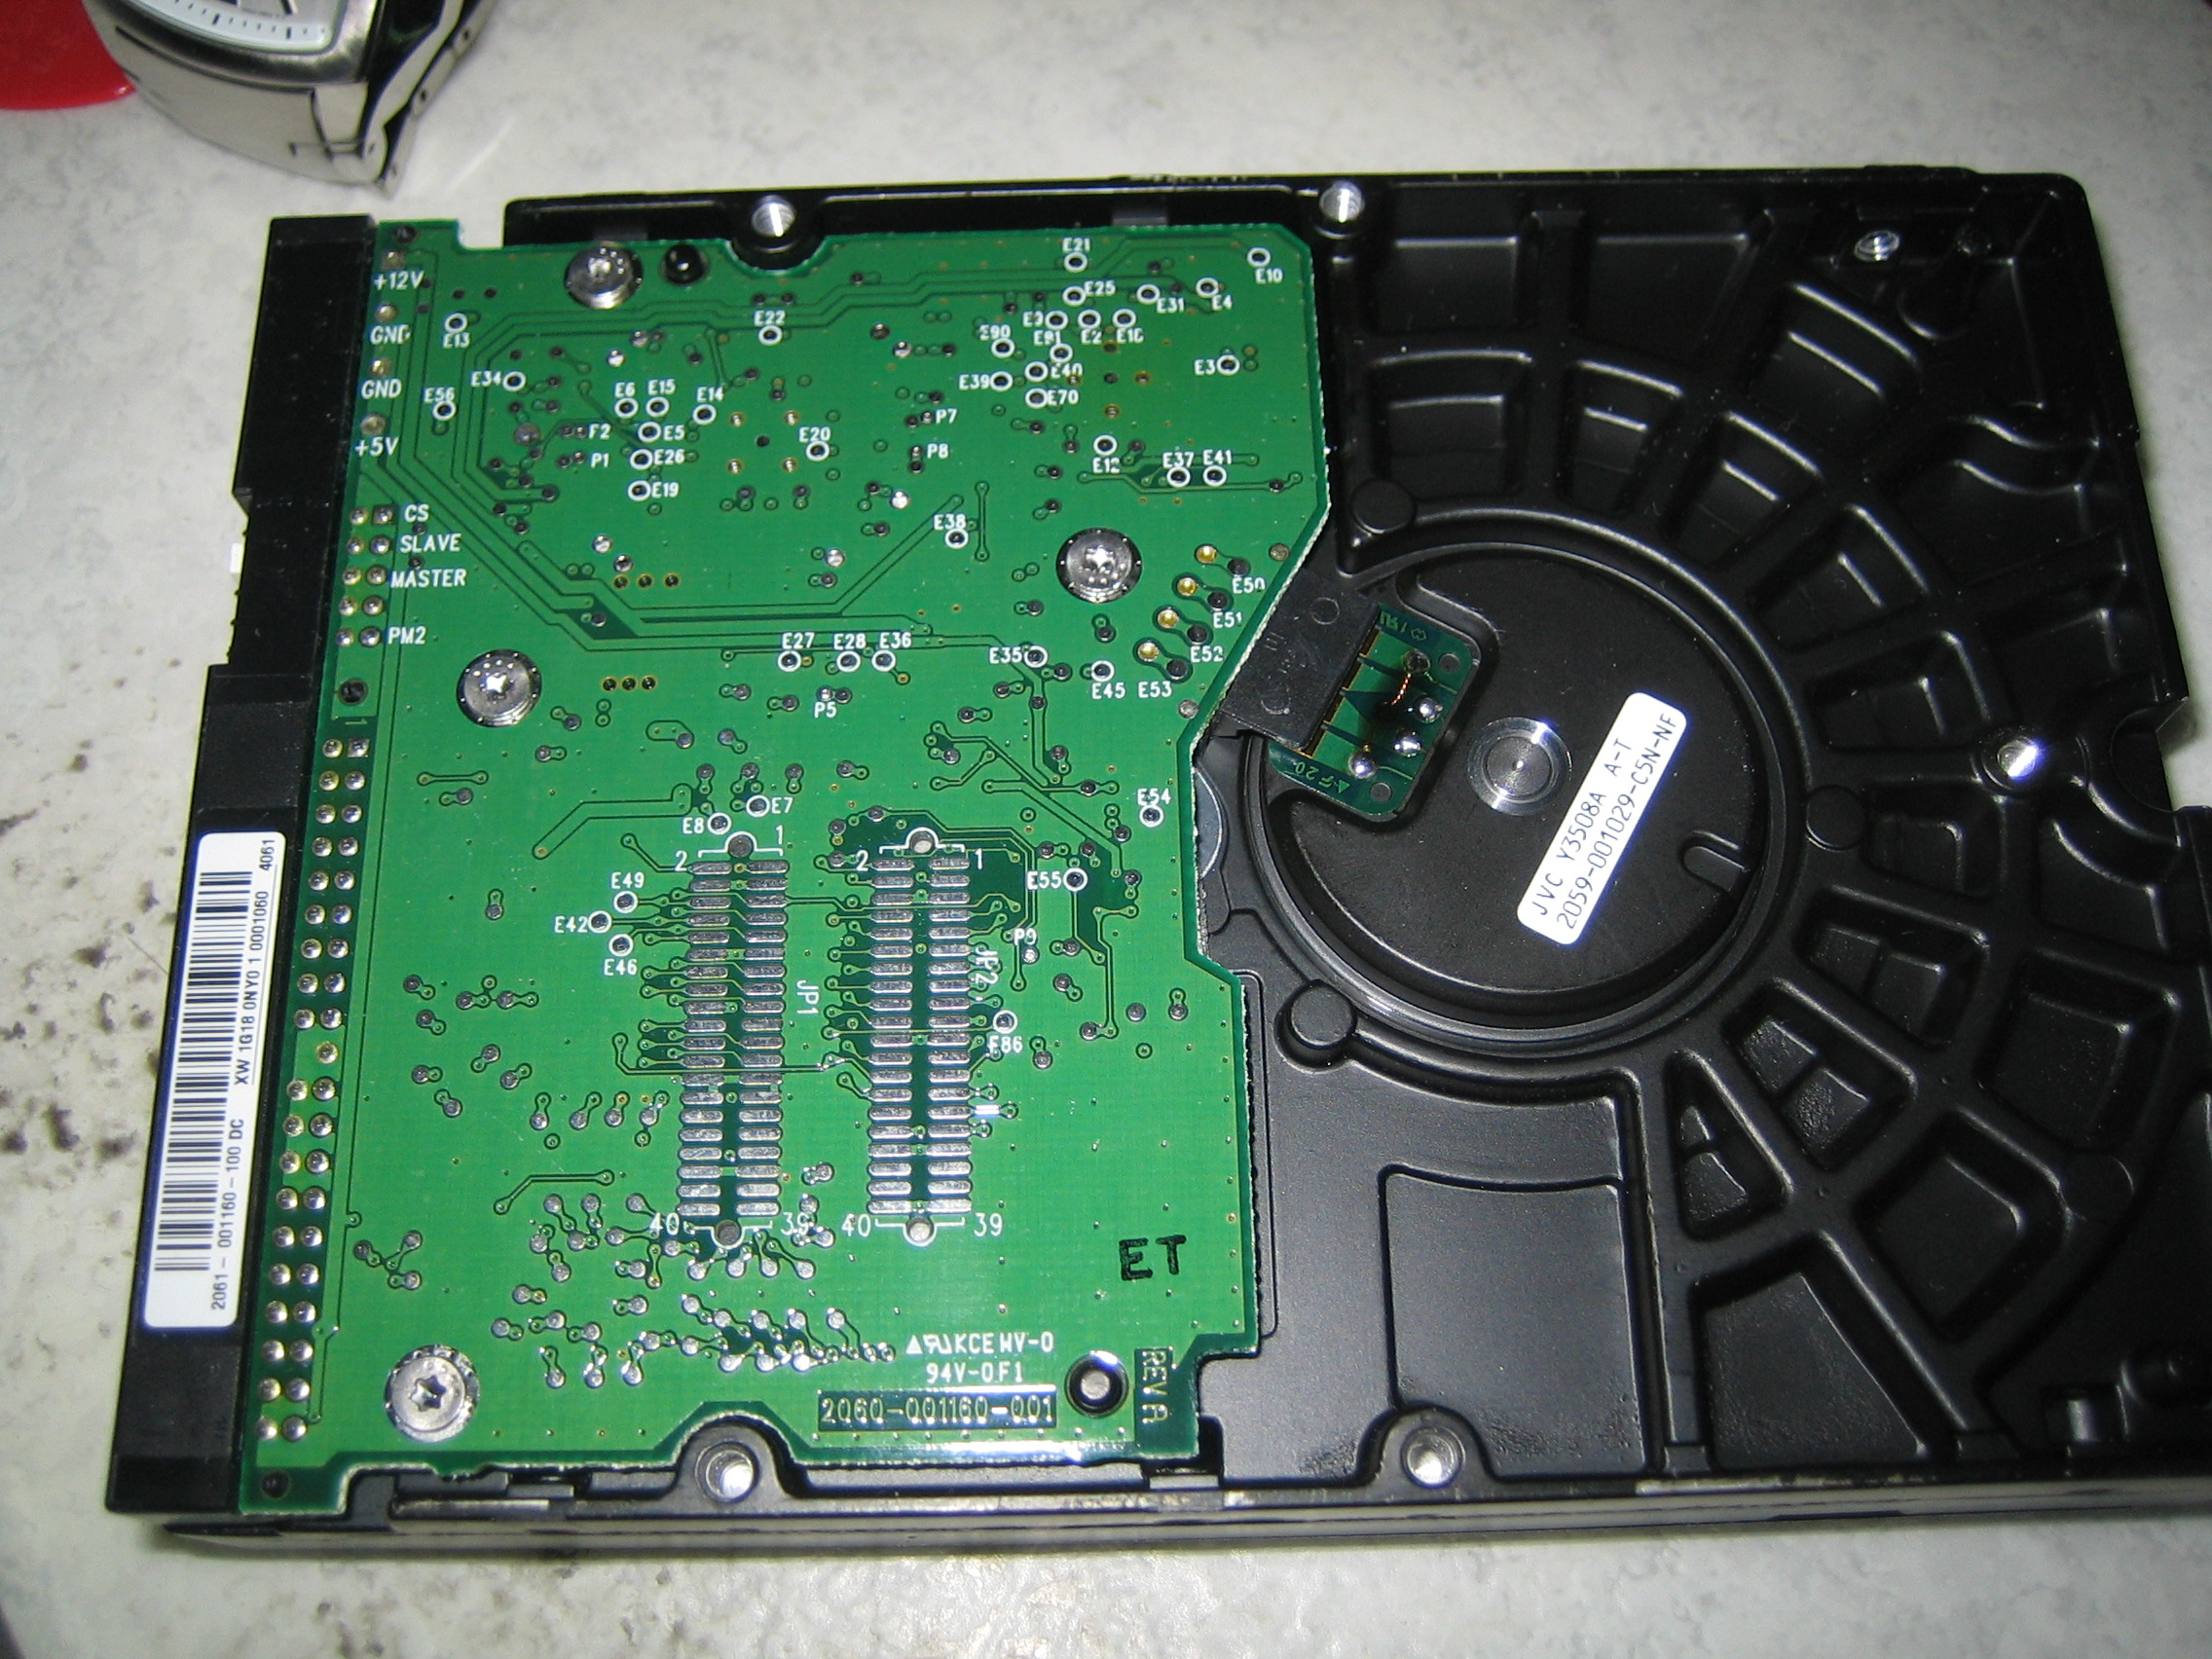 How To Repair A Damaged Pcb Board Wd1200 Hard Drive Circuit For Data Recovery Img 0182